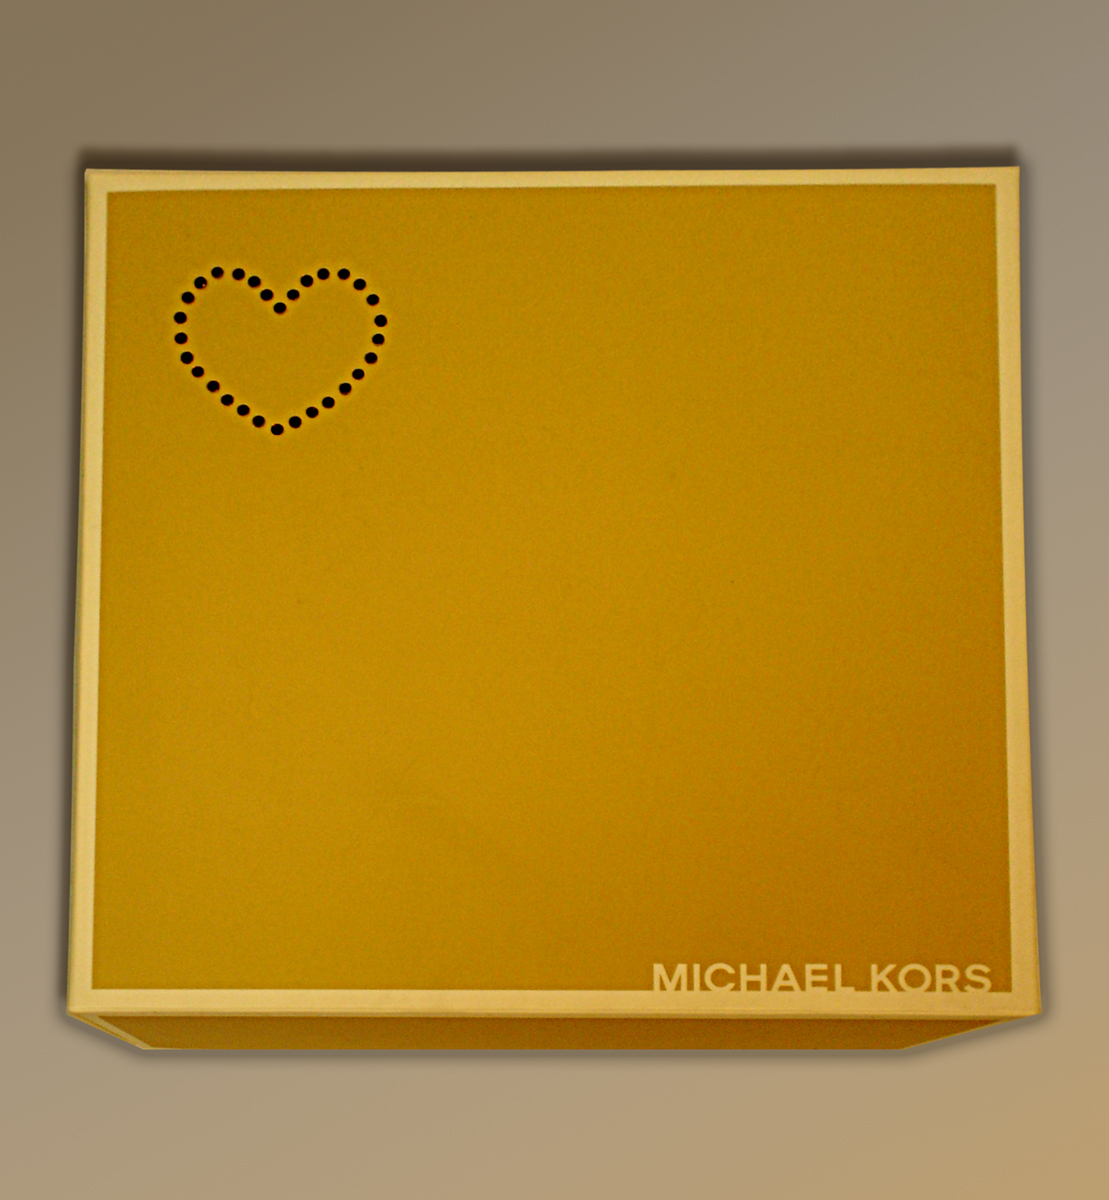 Michael Kors Gift Box